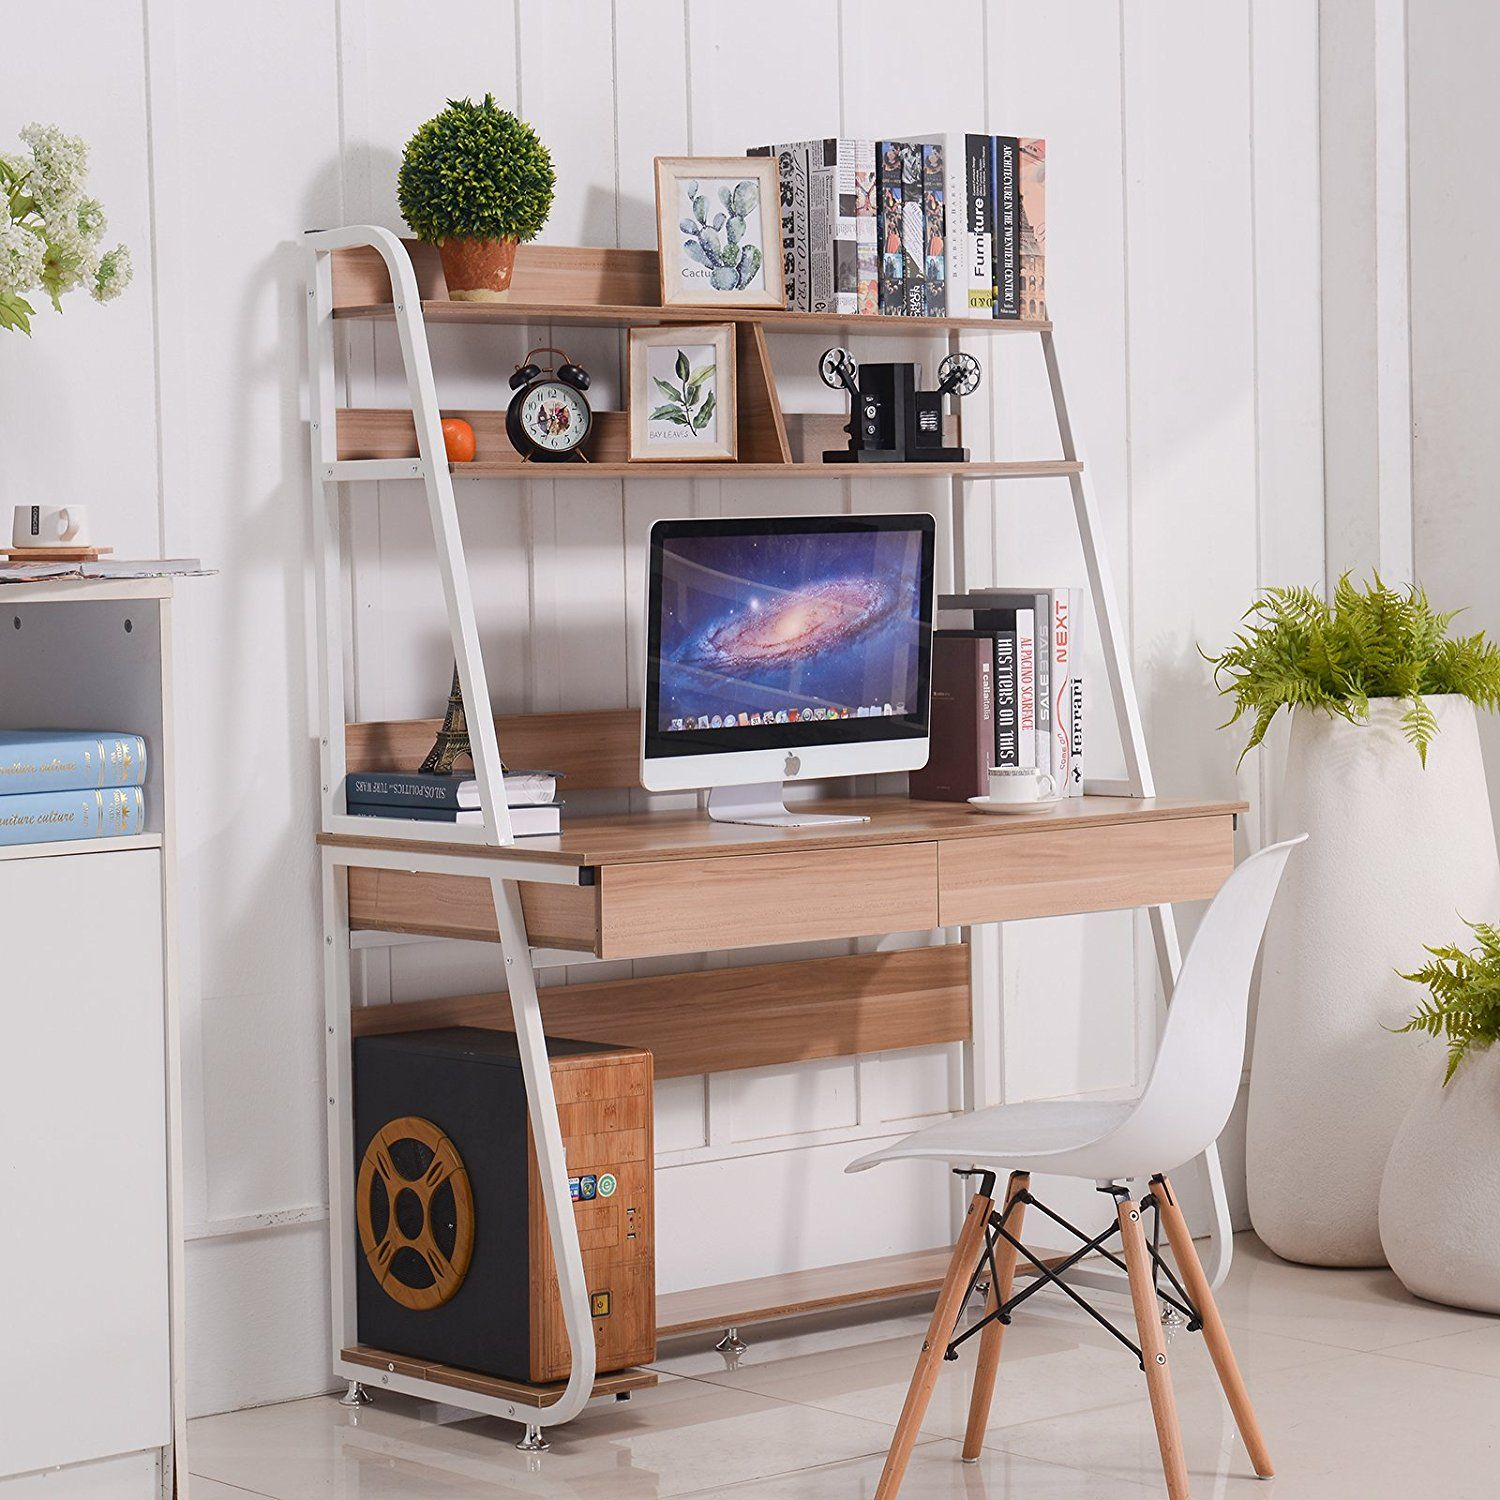 Amazon Com Emall Life Multi Functional Computer Desk With Bookshelf And Drawers Home Office Pc Lap Bookshelf Desk Functional Computer Desk Small Computer Desk